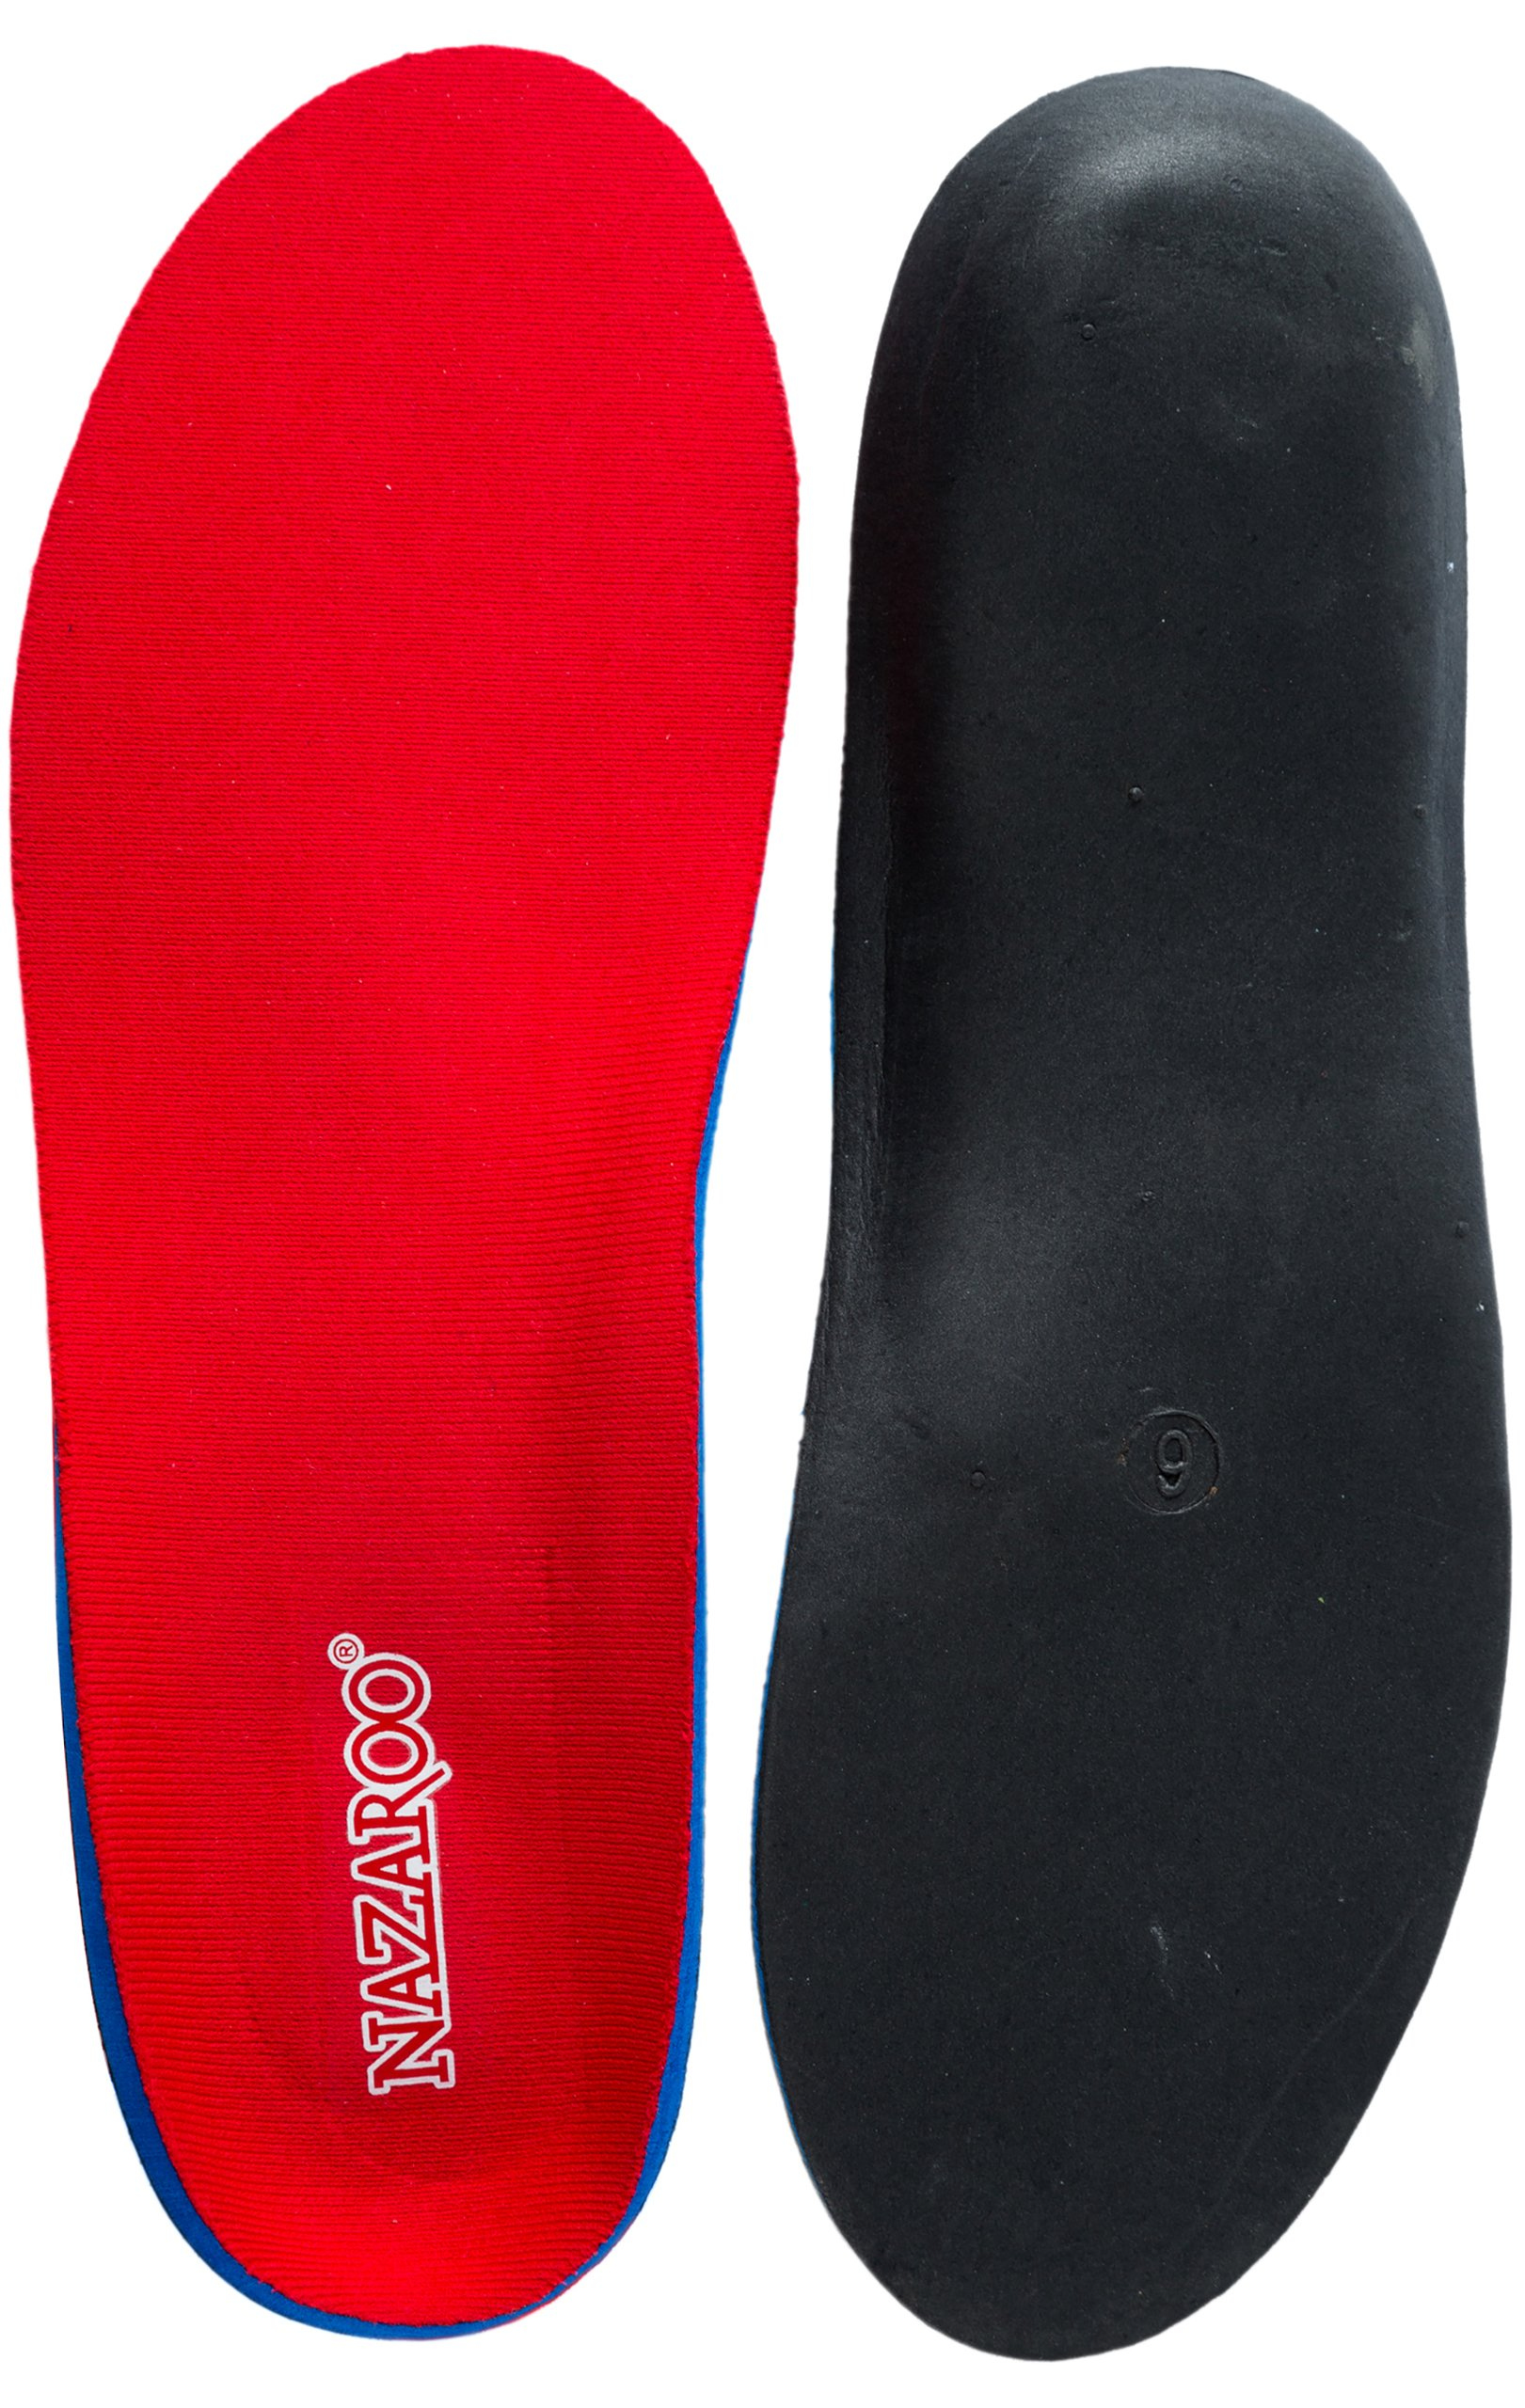 Orthotics for Flat Feet - Shoe Insoles For Heel Pain, Plantar Fasciitis, Fallen Arches Support (Mens 16-16 1/2)